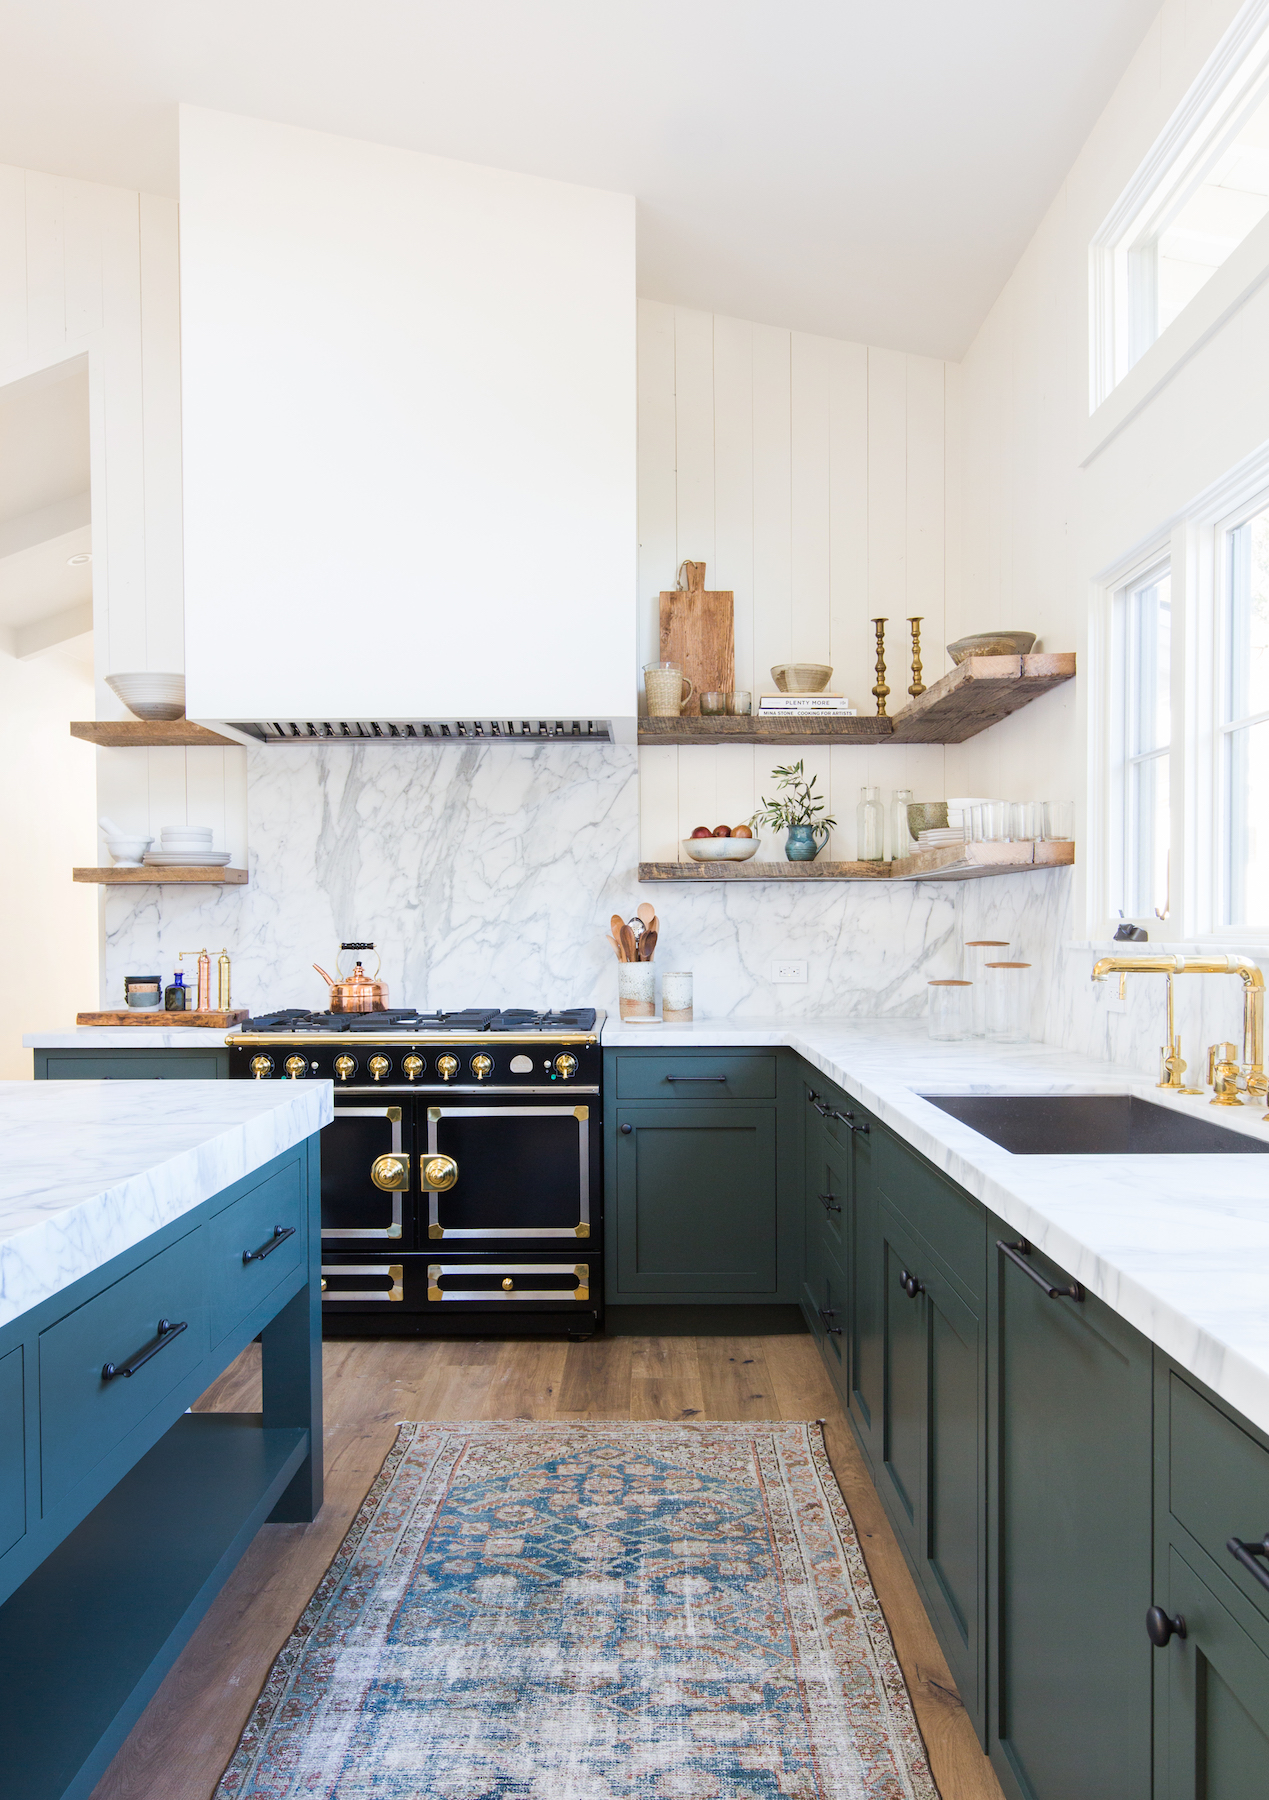 The Best Kitchen Paint Colors According To Interior Designers